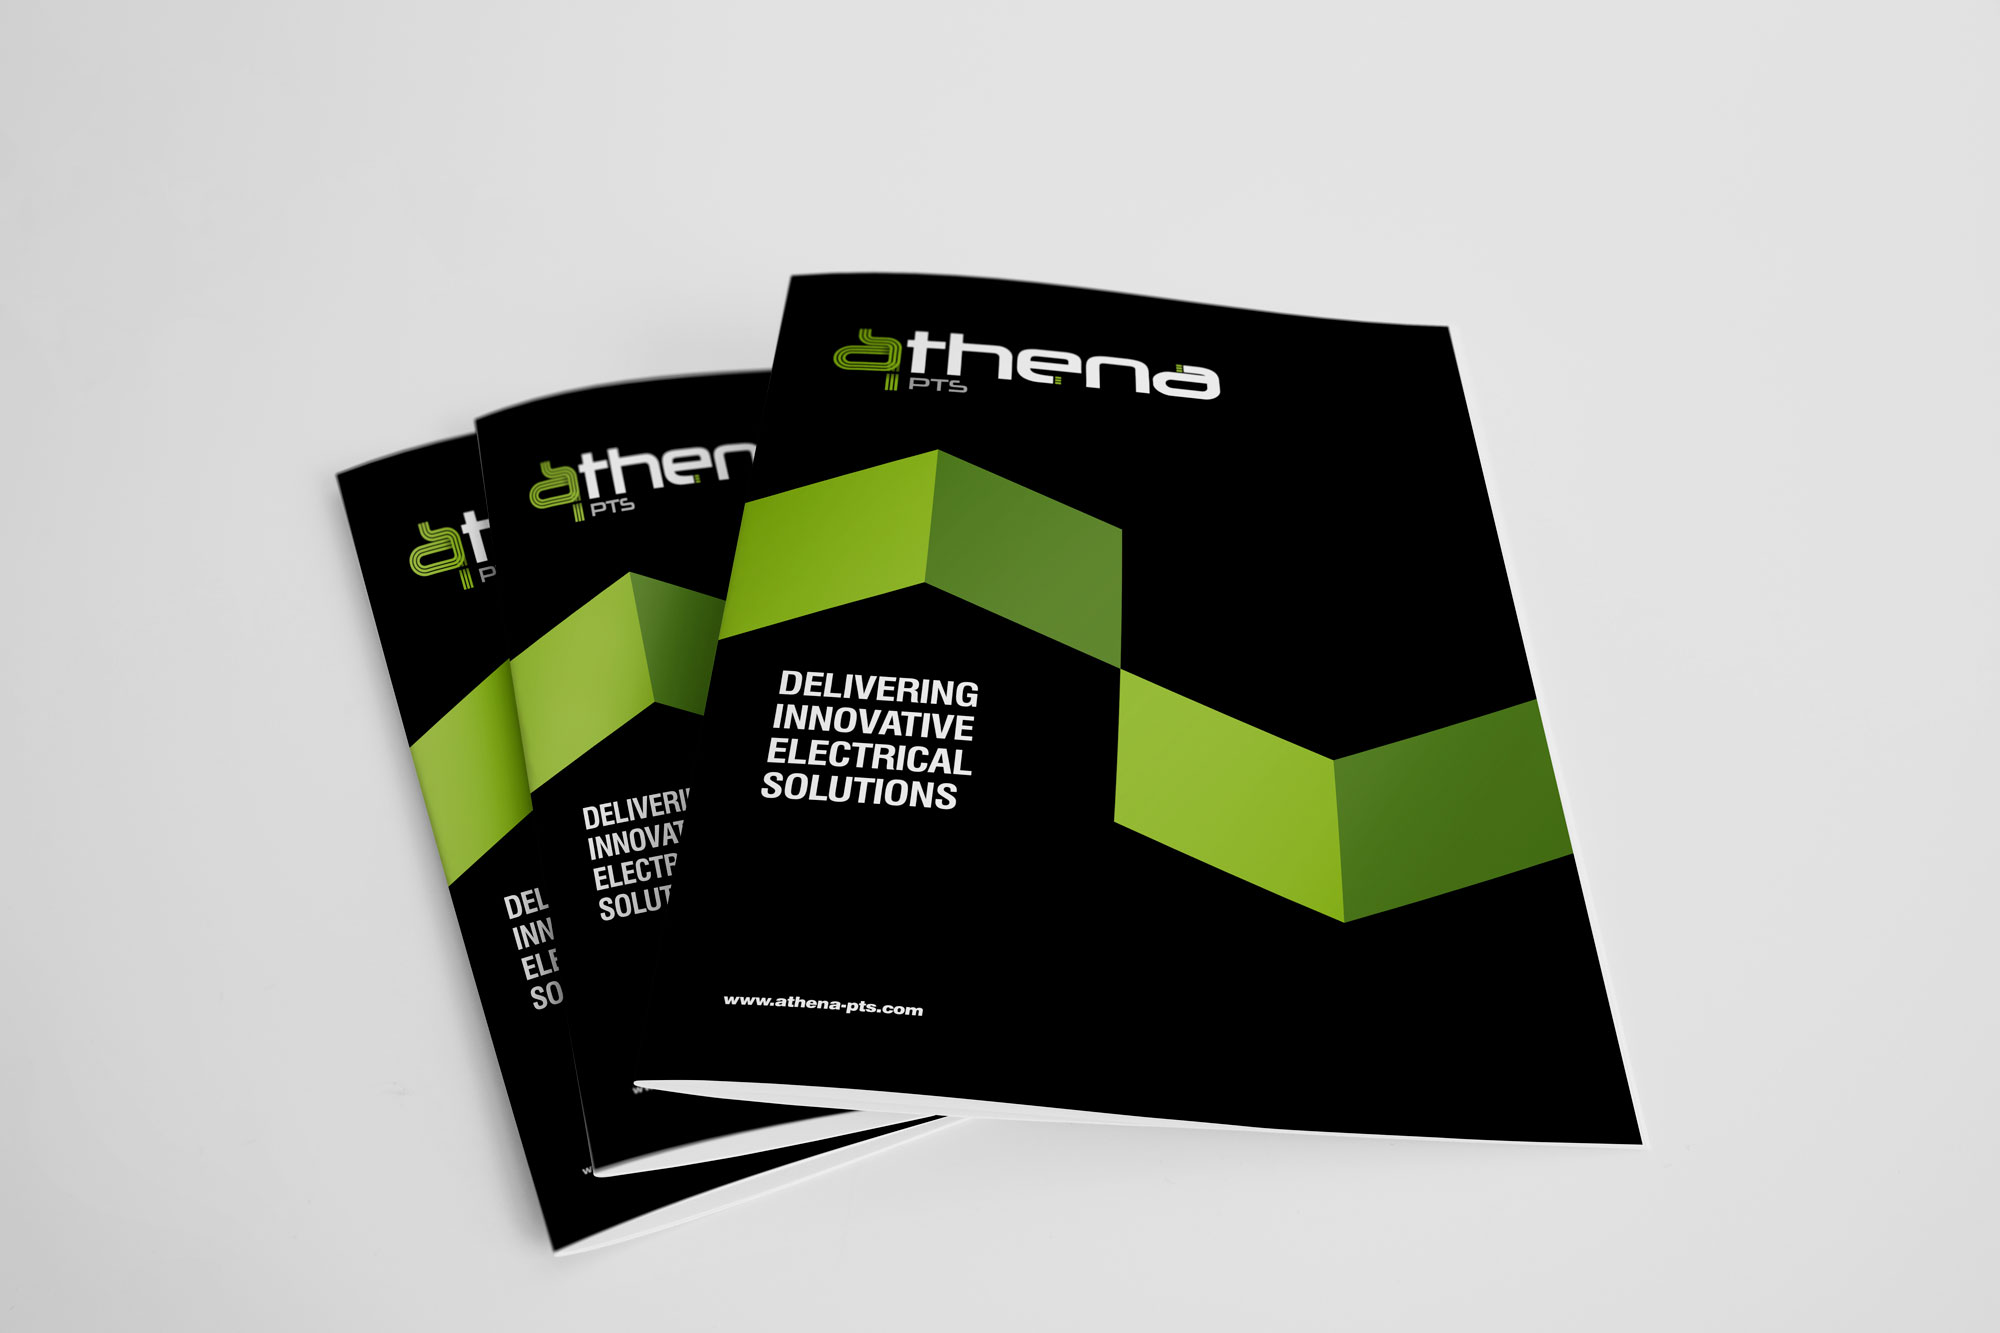 Athena Corporate Branding